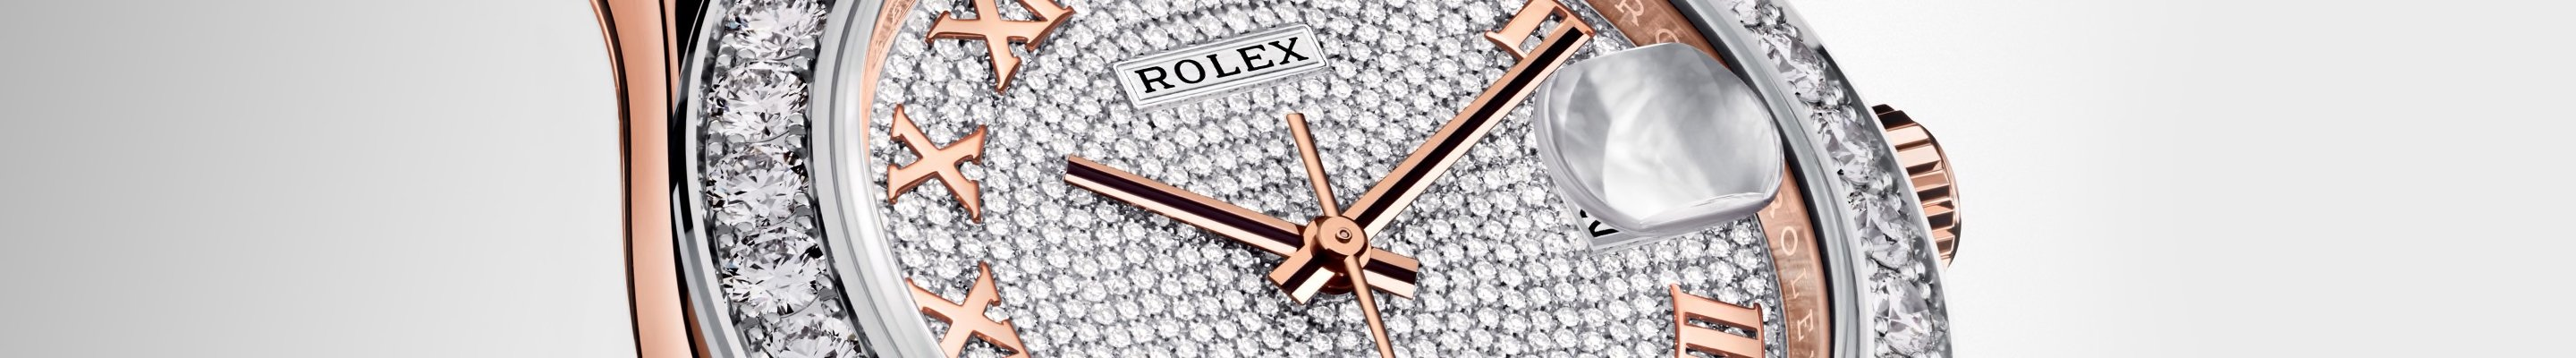 Rolex Pearlmaster